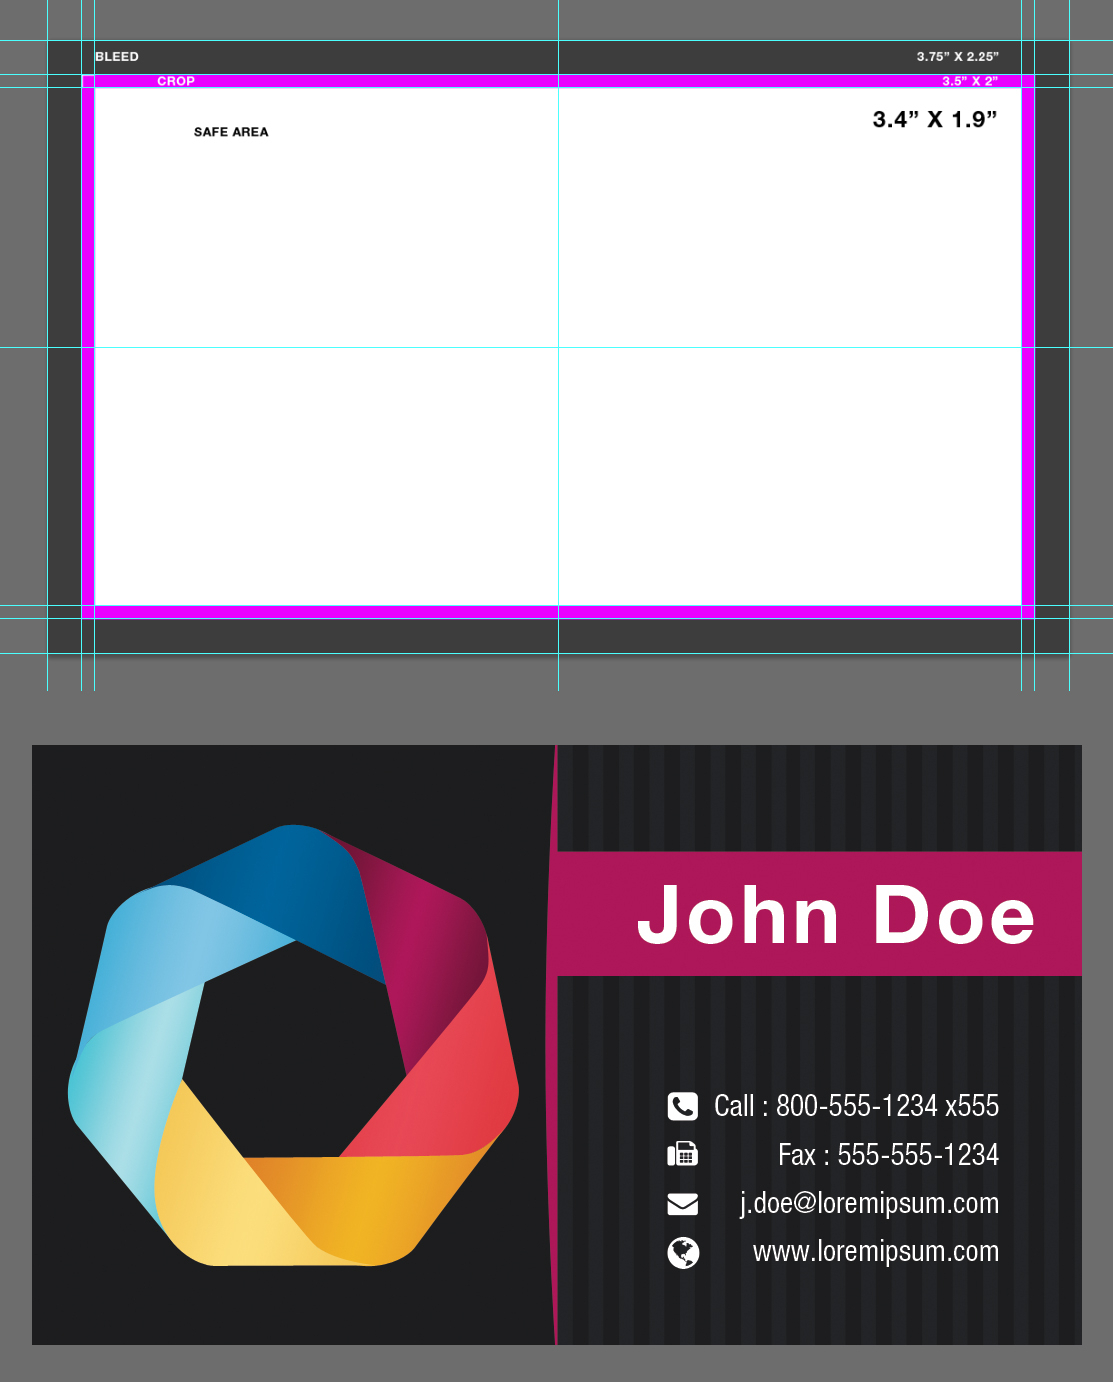 Blank Business Card Template Psdxxdigipxx On Deviantart Pertaining To Photoshop Business Card Template With Bleed